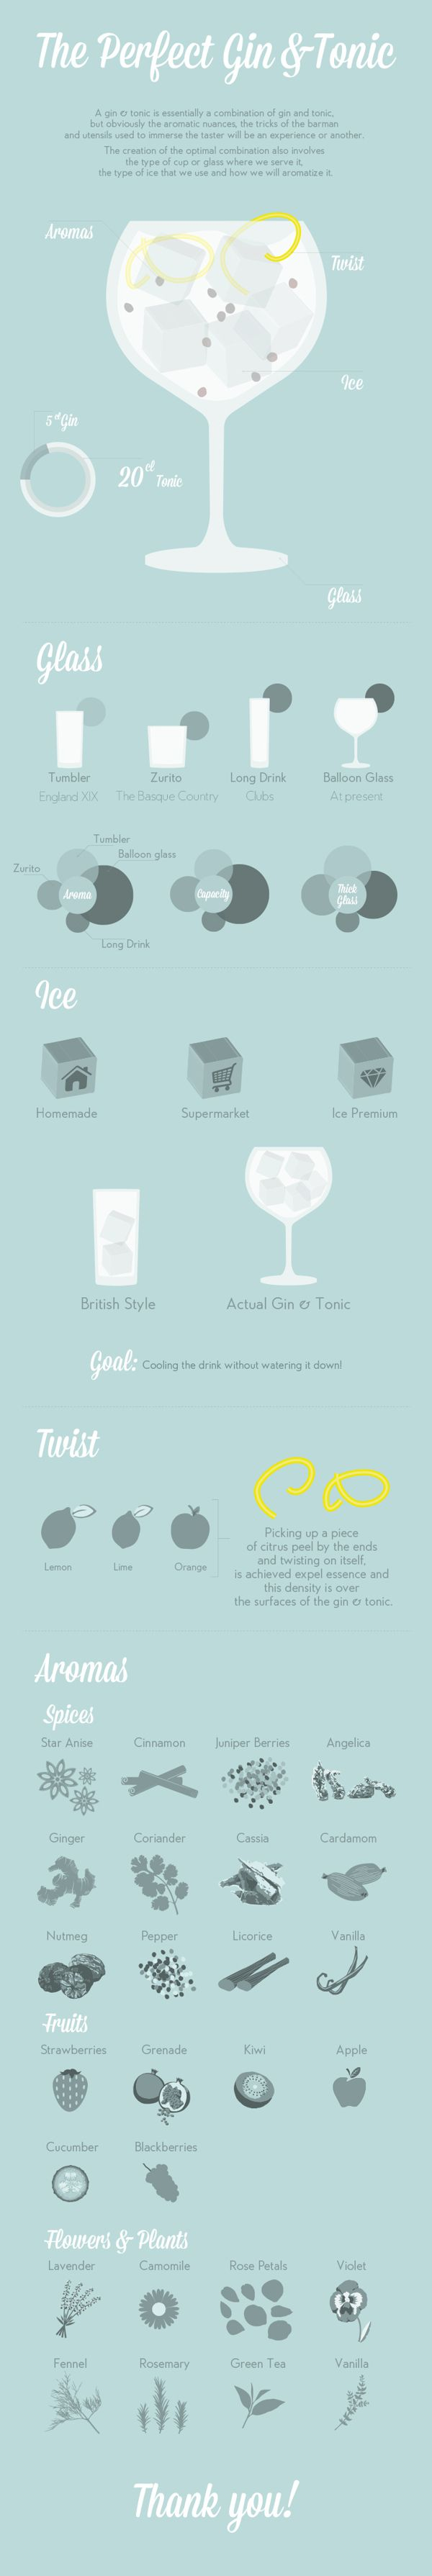 The Perfect Gin&Tonic by Javier Mangas, via Behance